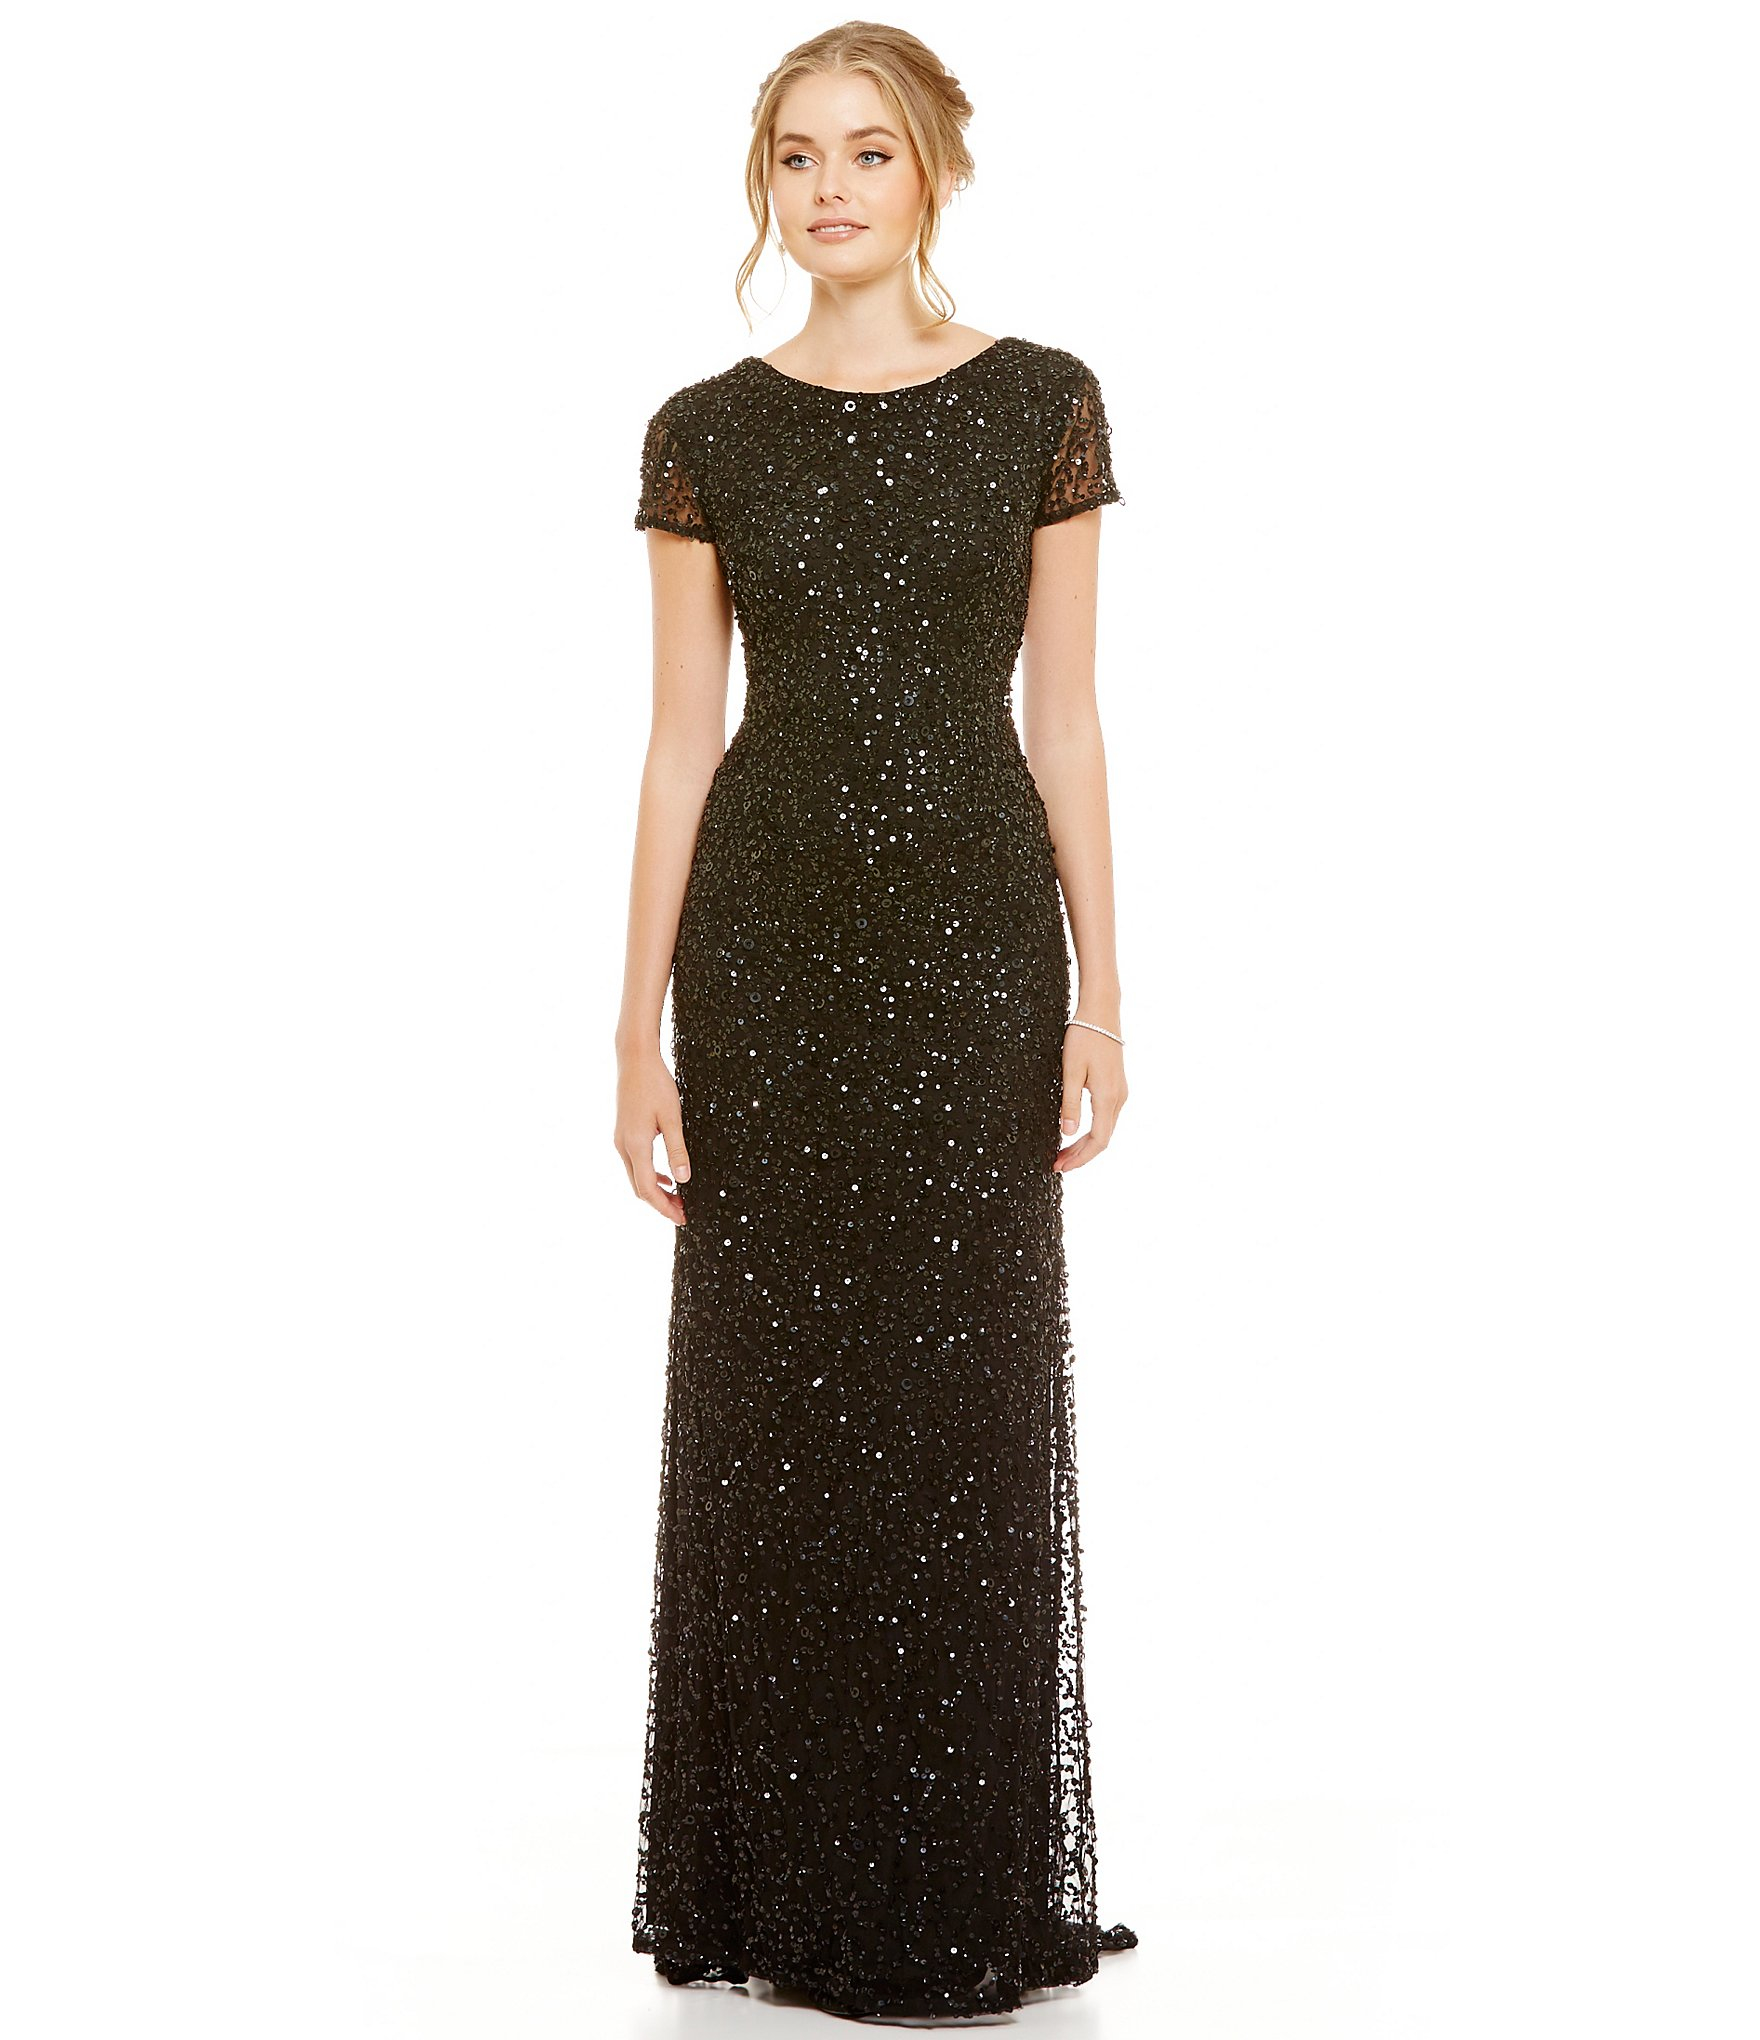 Adrianna papell Short sleeve Sequined Long Skirt Gown in